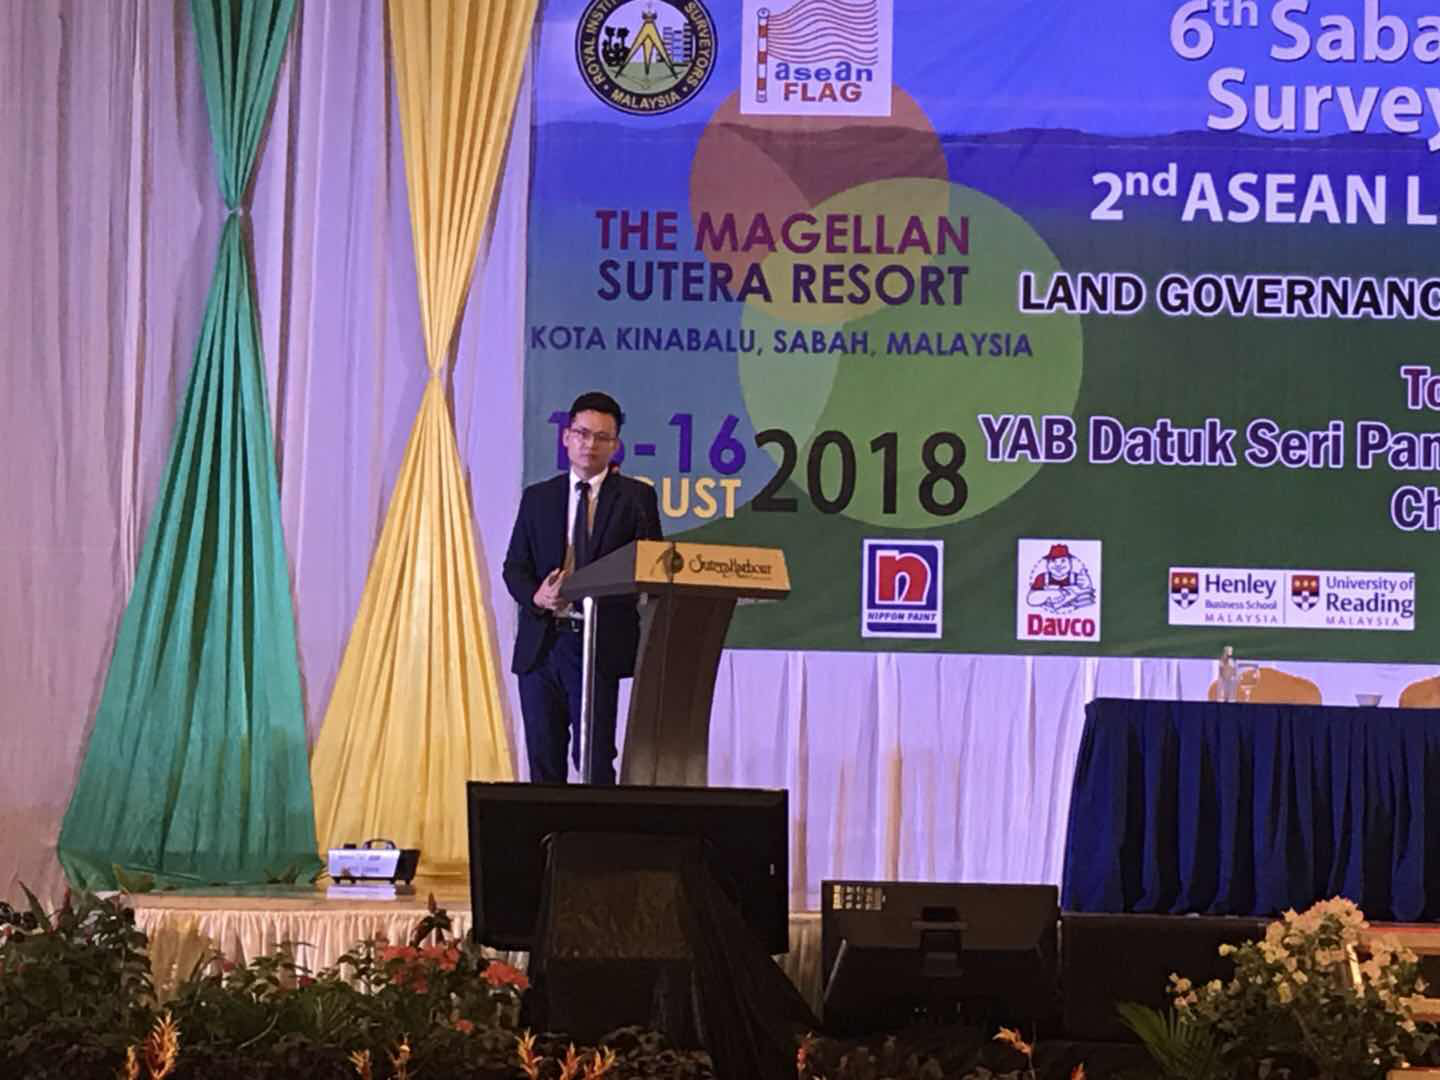 20180821014350611 - Hi-Target in The 6th Sabah International Surveyors' Congress